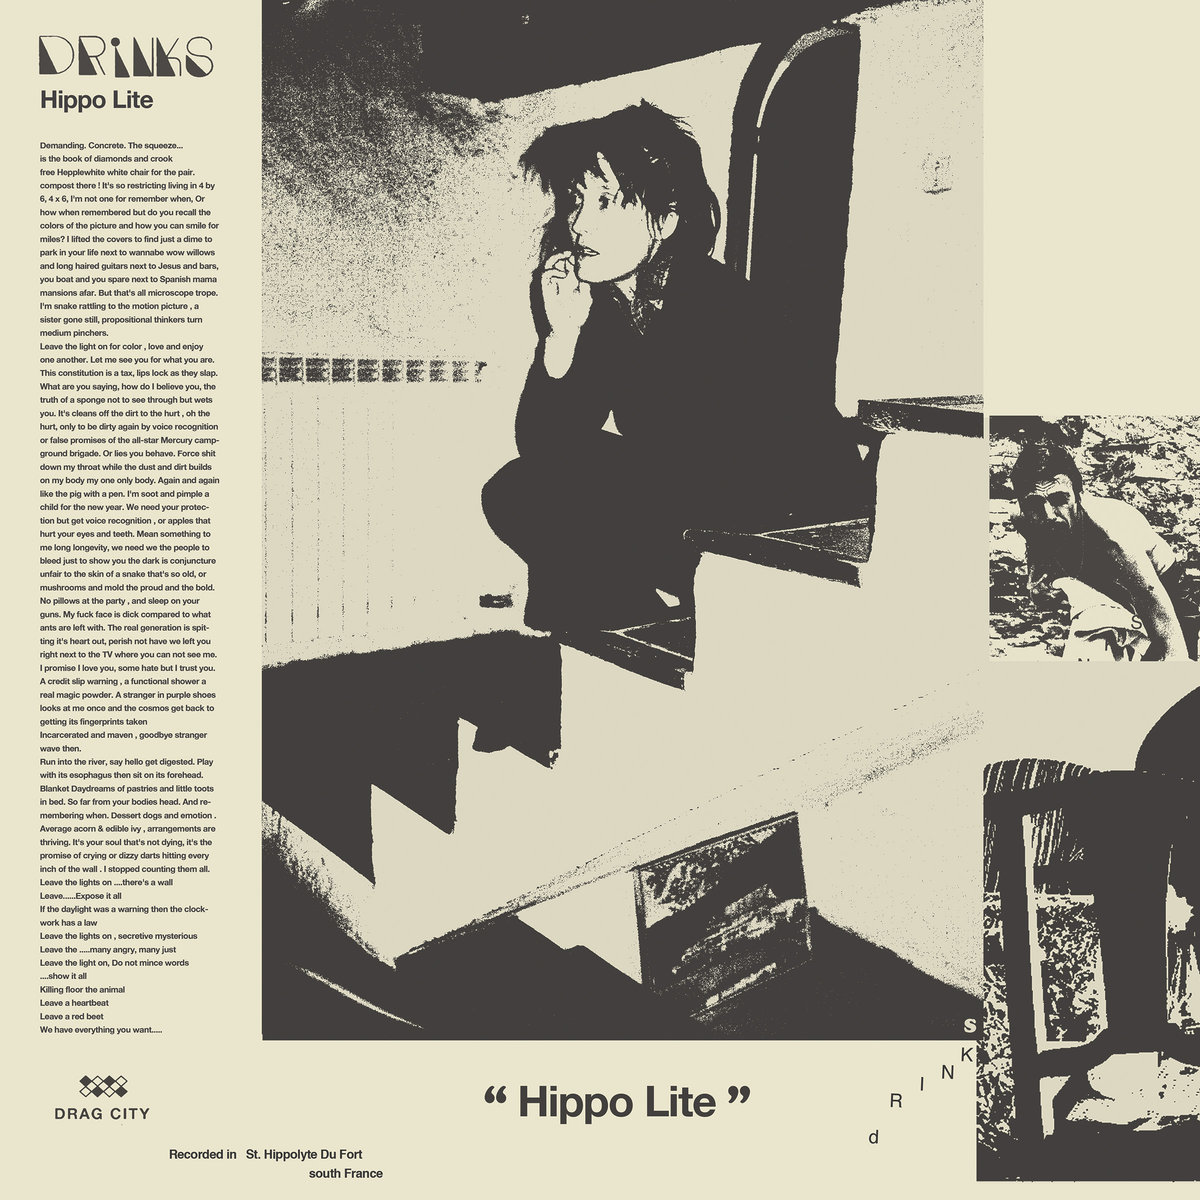 Album Review: Drinks 'Hippo Lite'